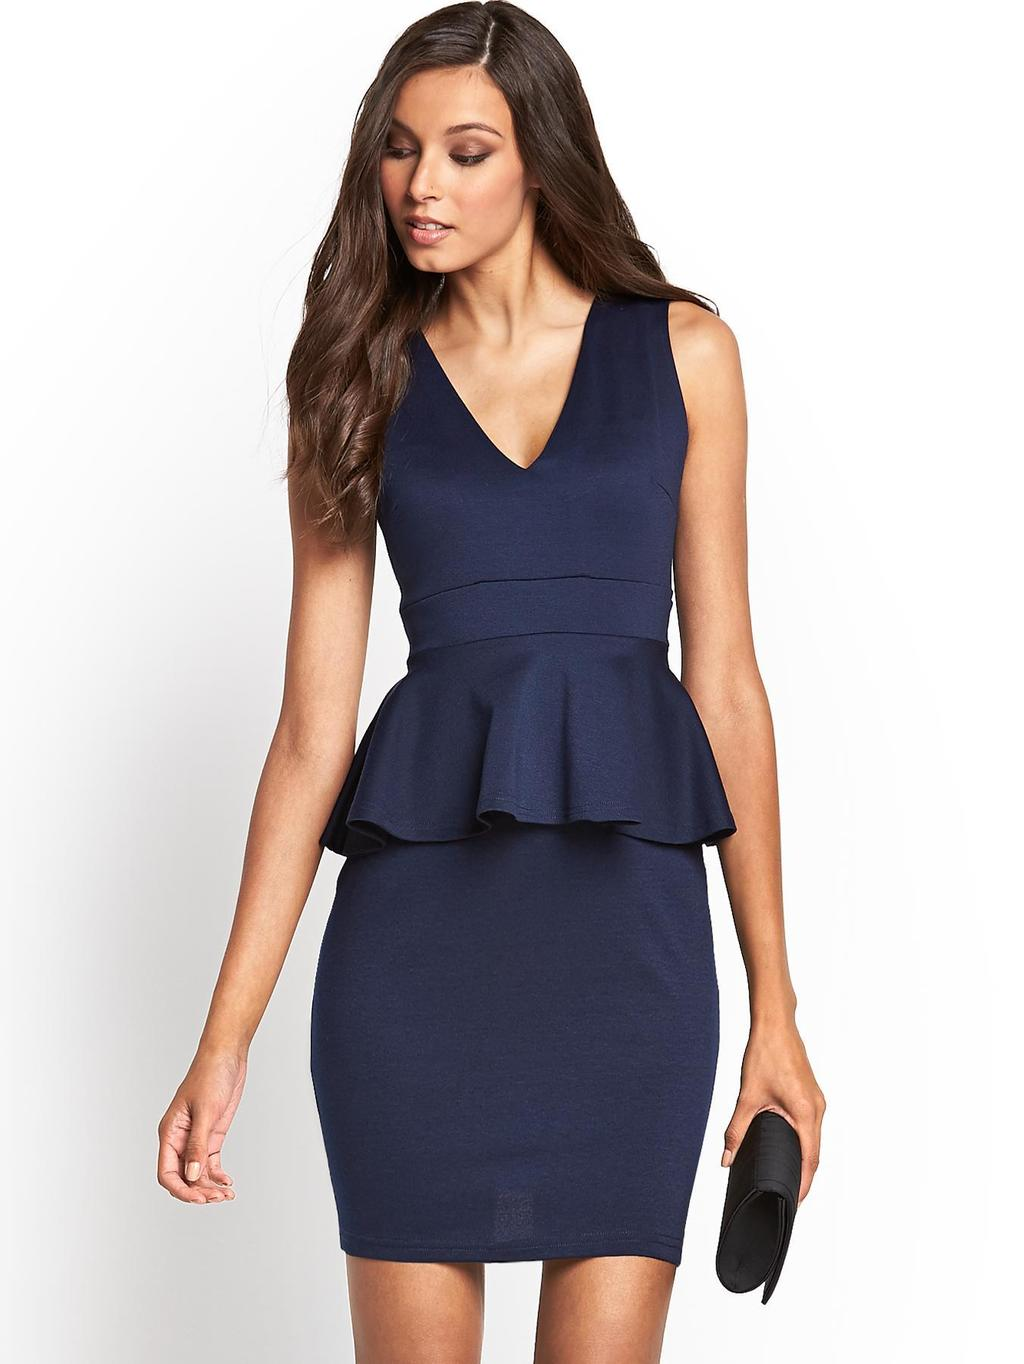 Peplum Dress, Navy - neckline: low v-neck; fit: tailored/fitted; pattern: plain; sleeve style: sleeveless; style: bodycon; waist detail: peplum waist detail; predominant colour: navy; occasions: evening, occasion; length: just above the knee; fibres: polyester/polyamide - stretch; sleeve length: sleeveless; pattern type: fabric; texture group: woven light midweight; season: s/s 2014